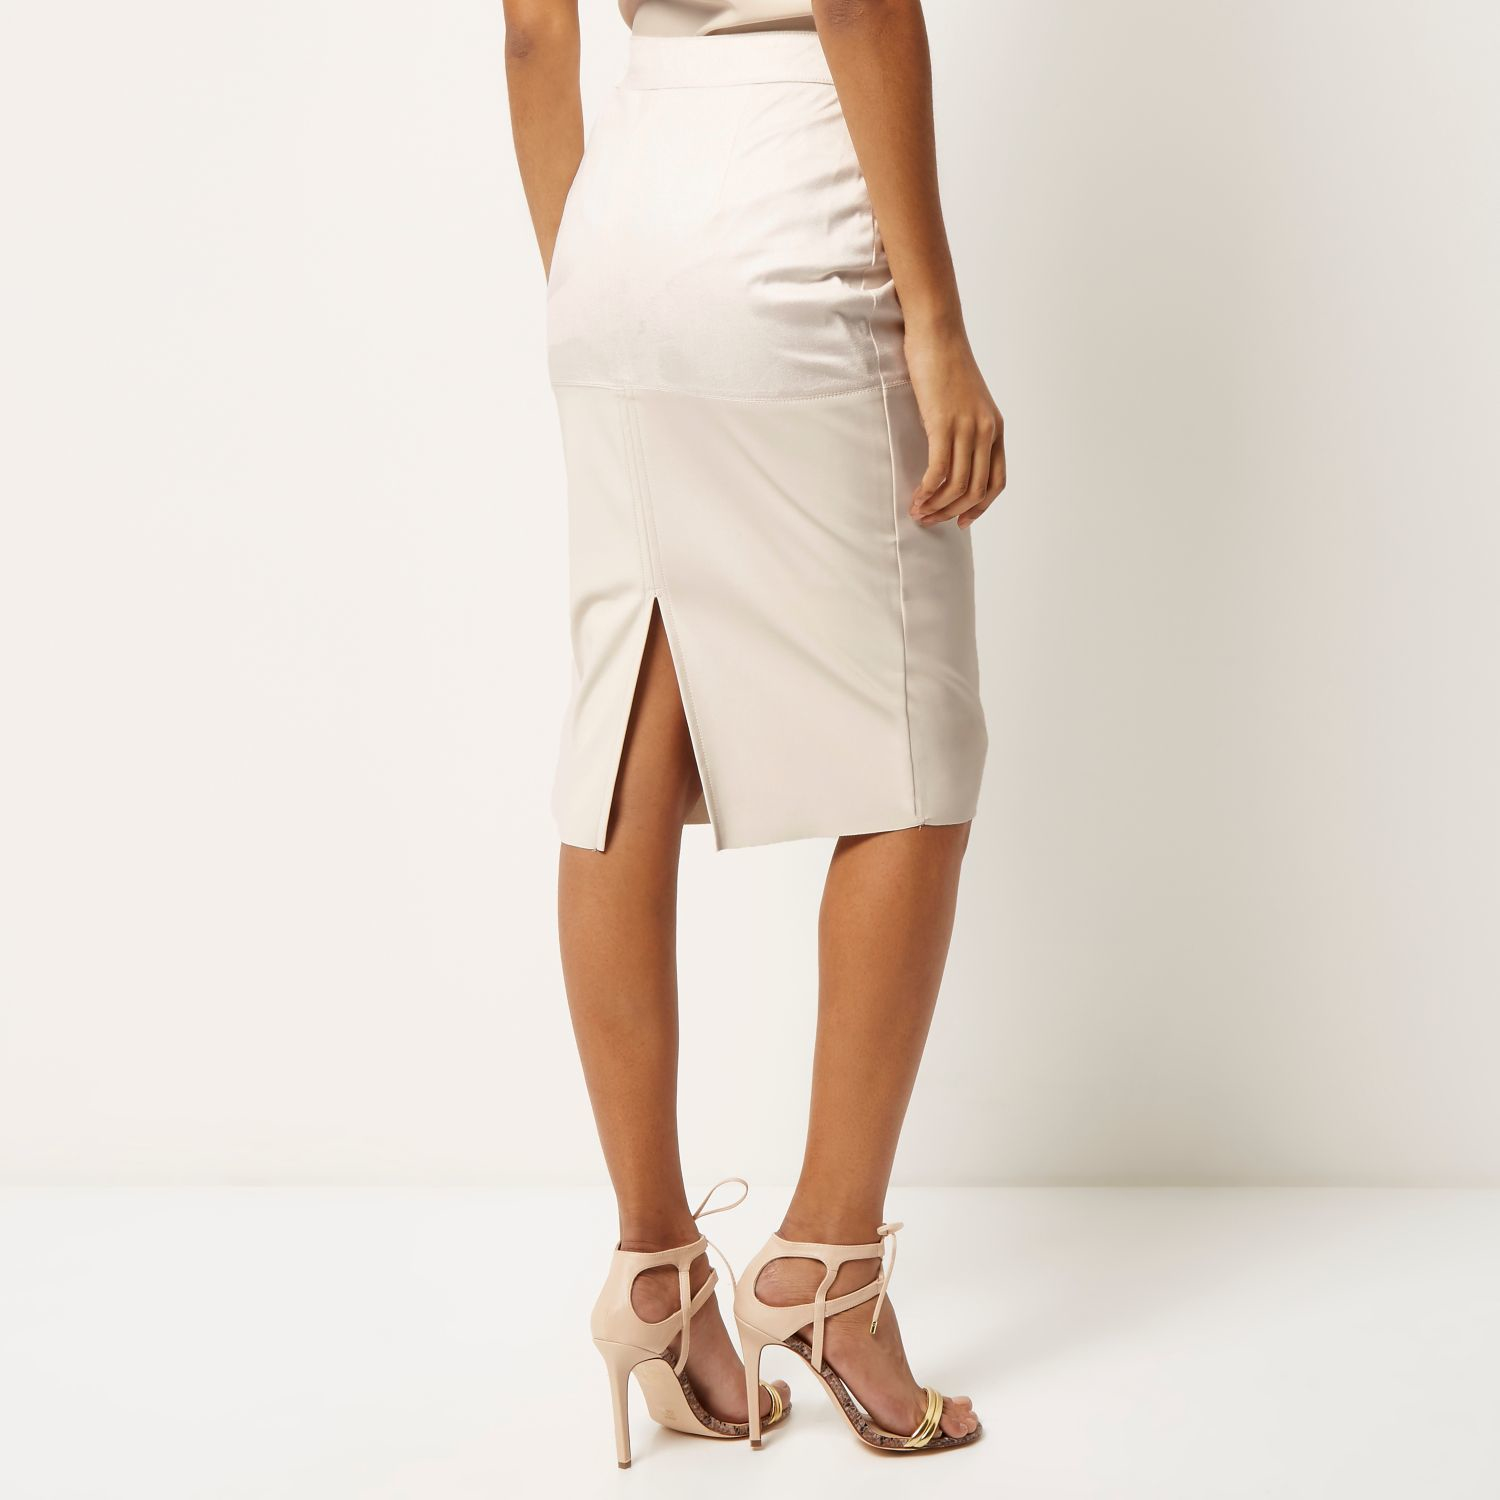 Cream pencil skirt h&m – The most popular models skirts